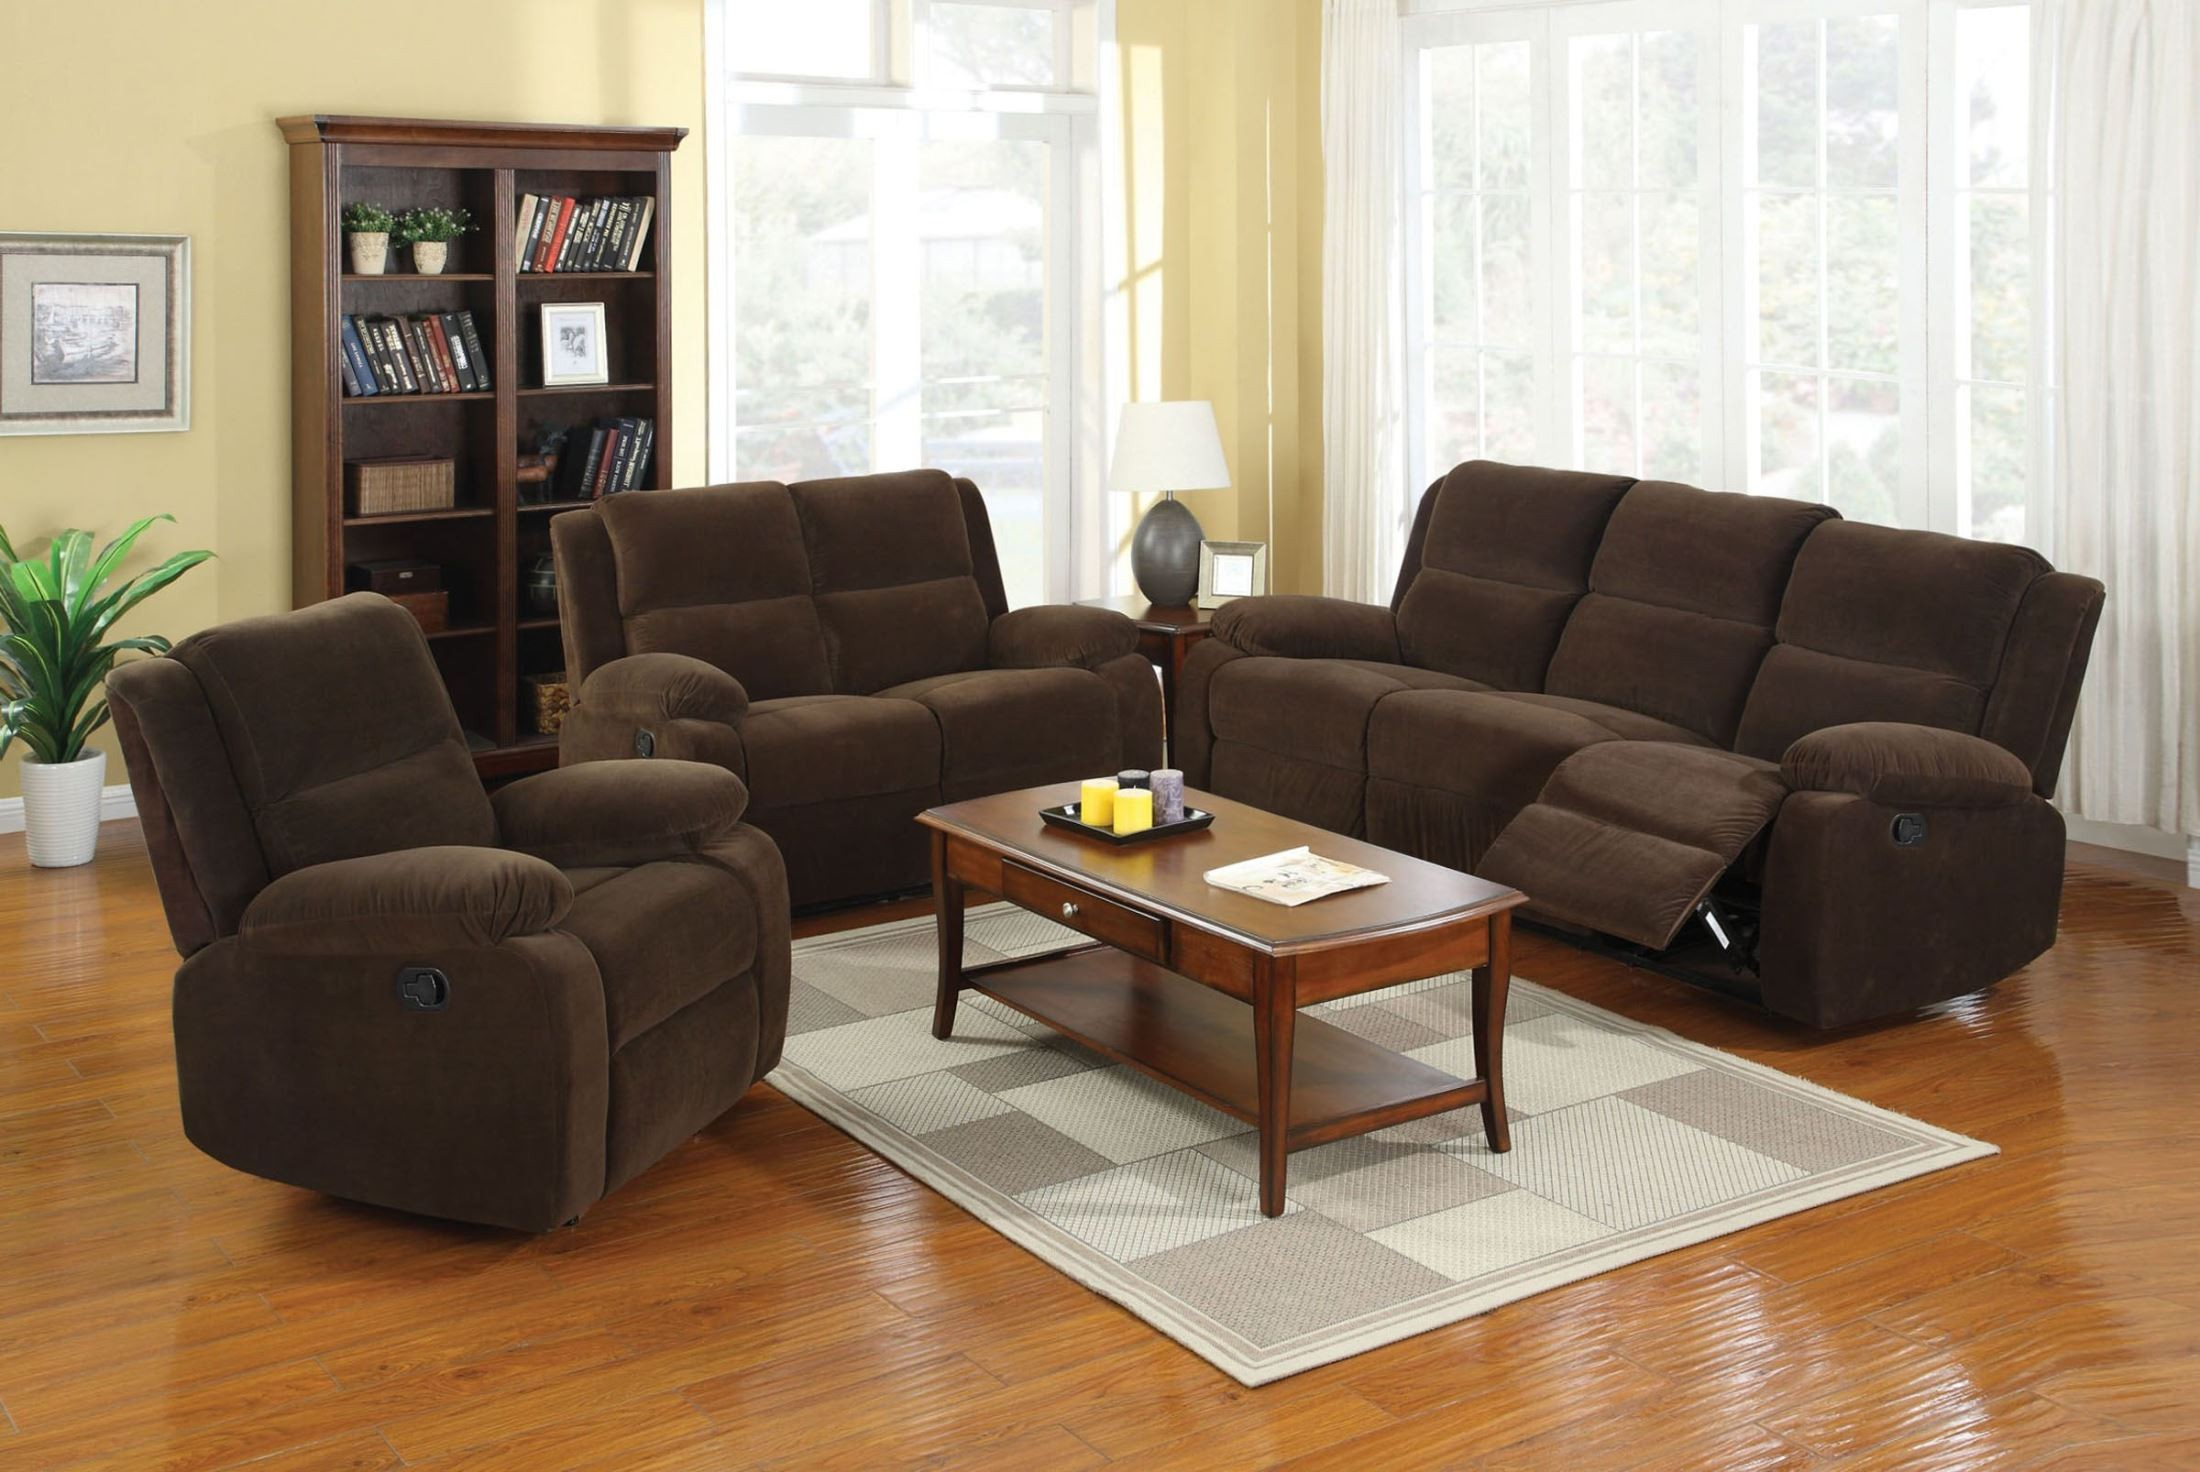 Haven dark brown flannelette reclining living room set for Dark brown living room set